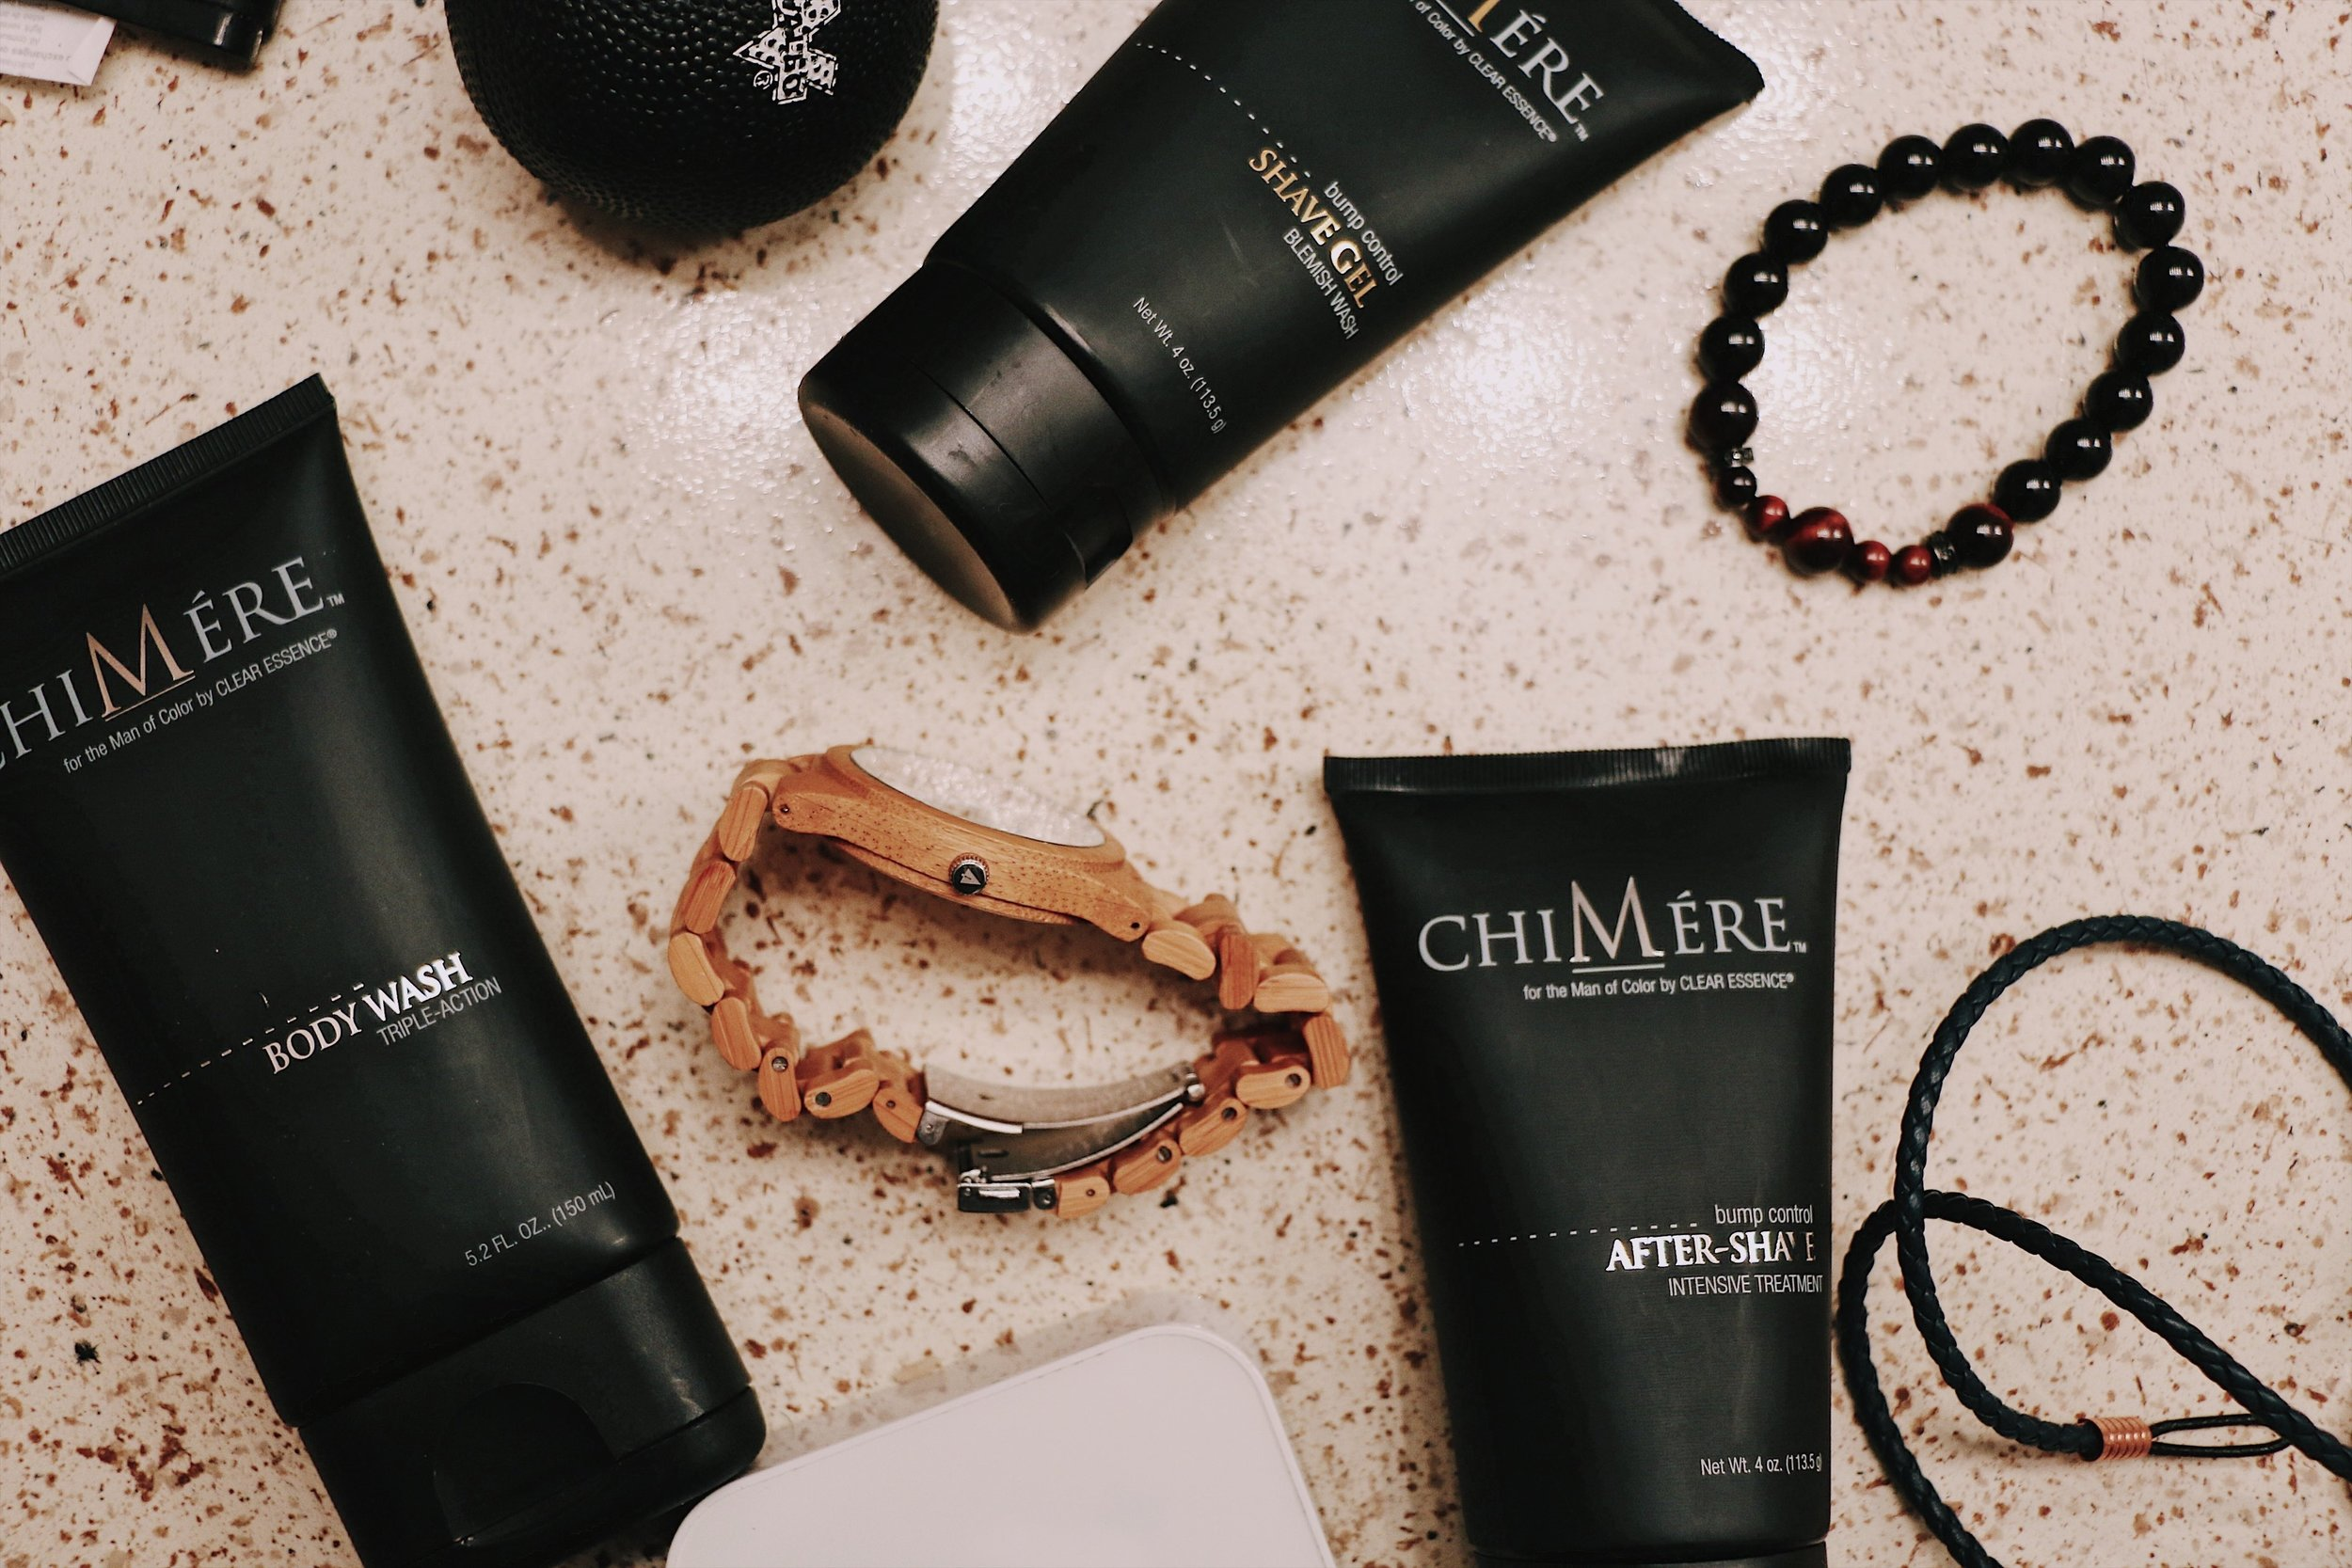 chimere-product shots-1.jpg